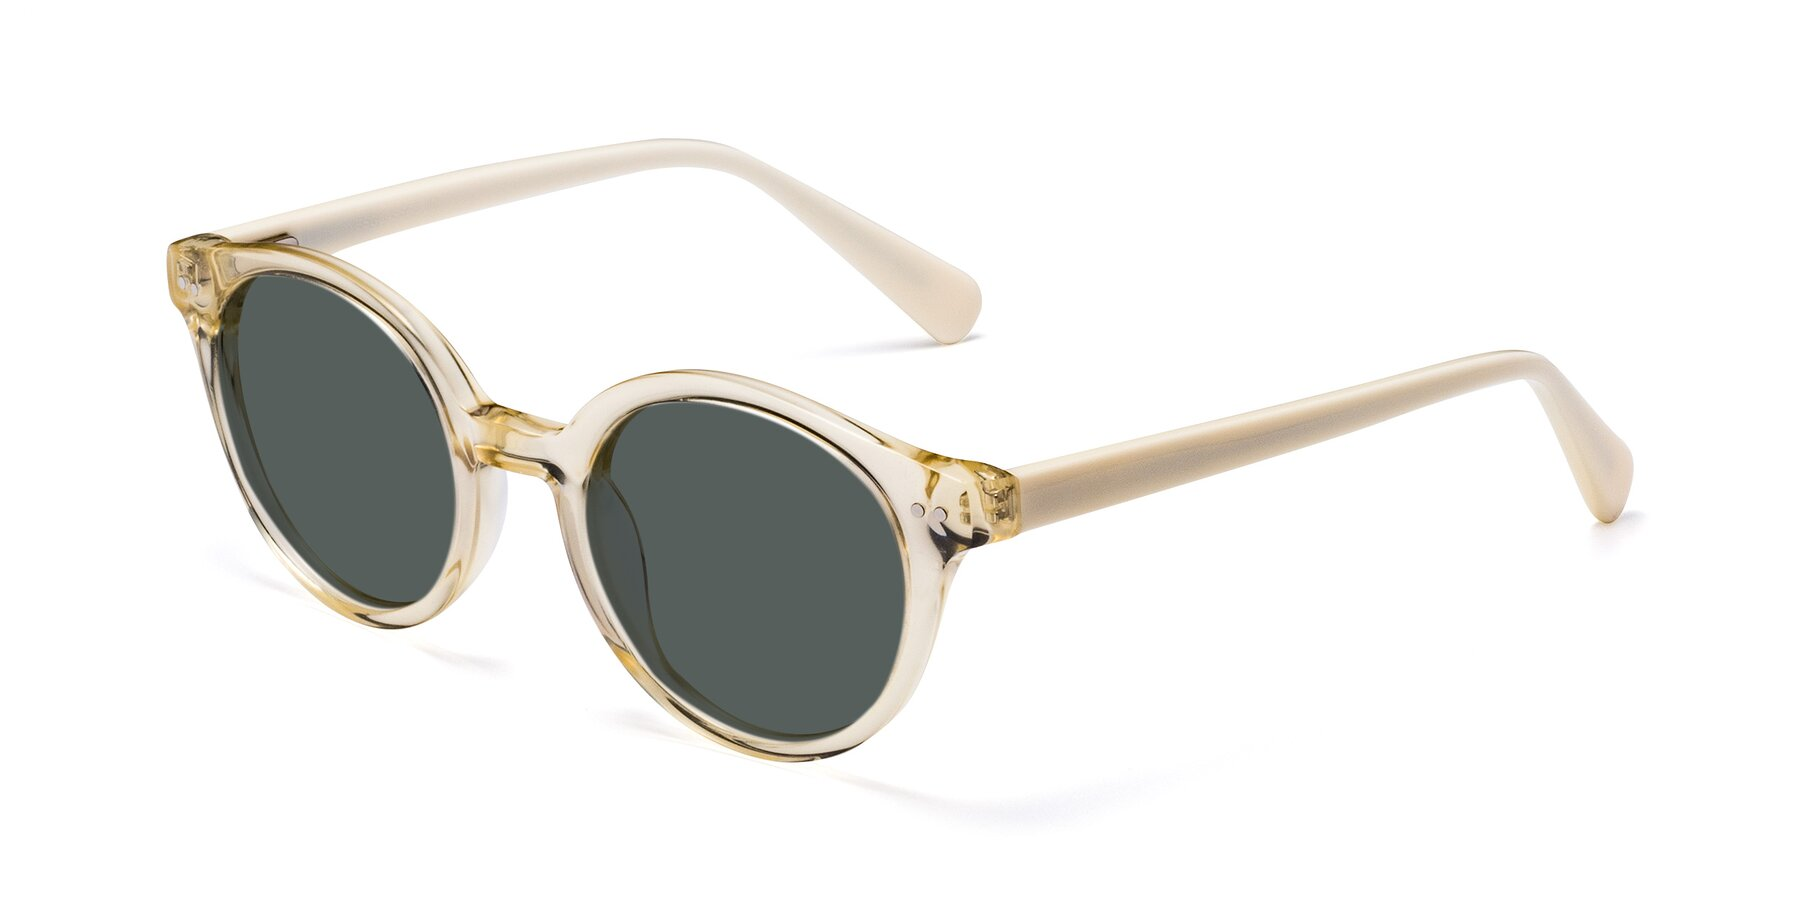 Angle of 17277 in Transparent Beige with Gray Polarized Lenses